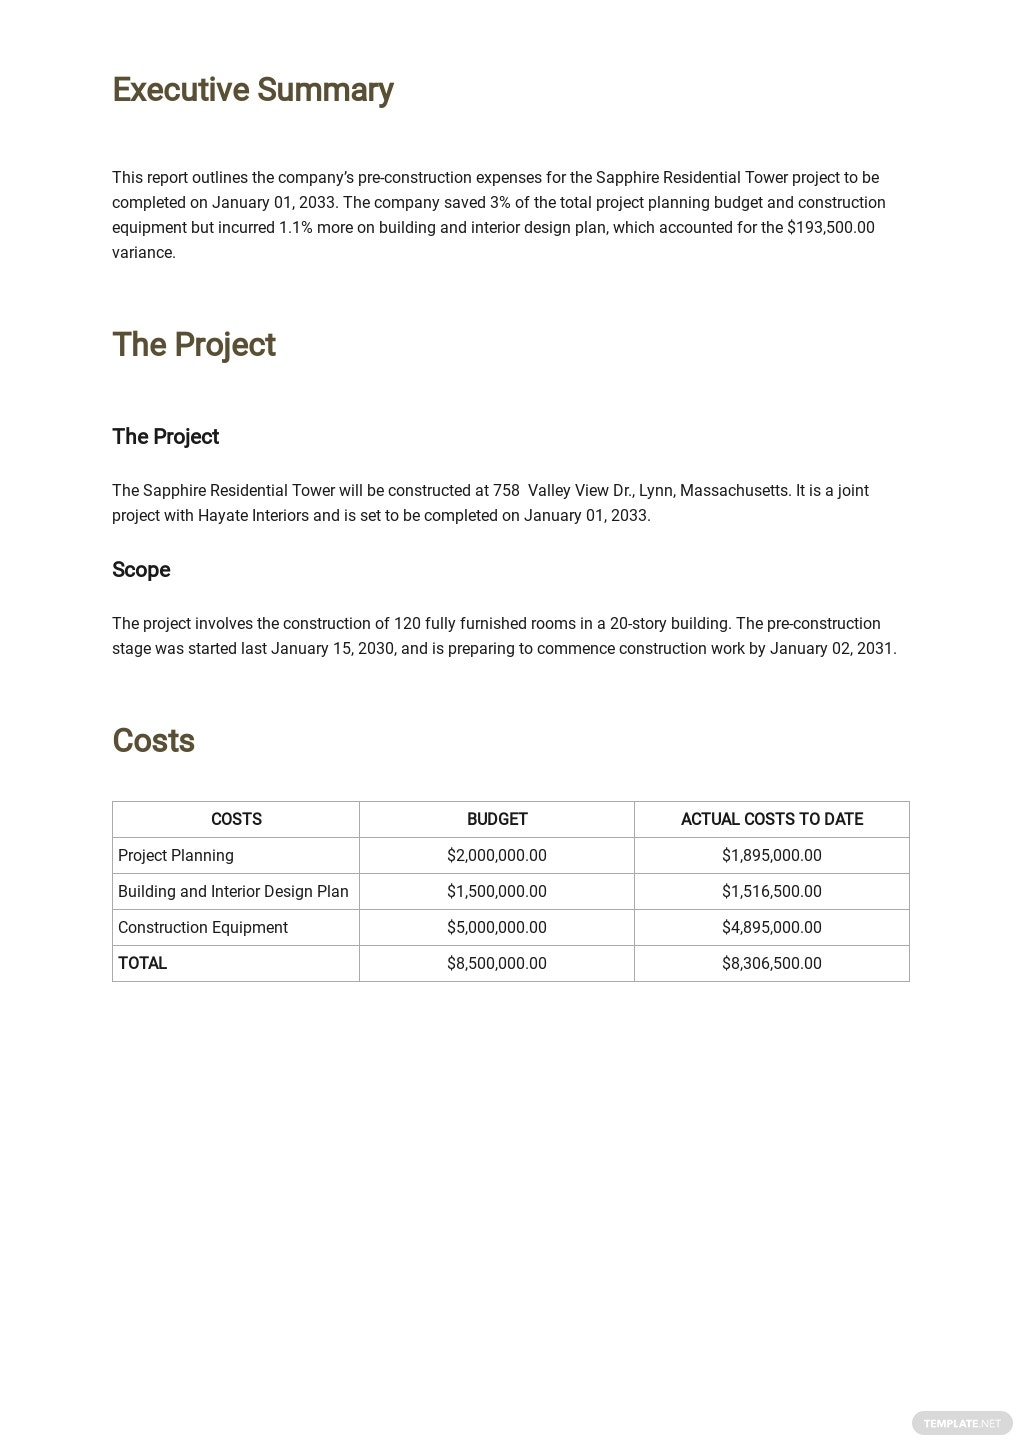 Free Construction Expense Report Template 1.jpe